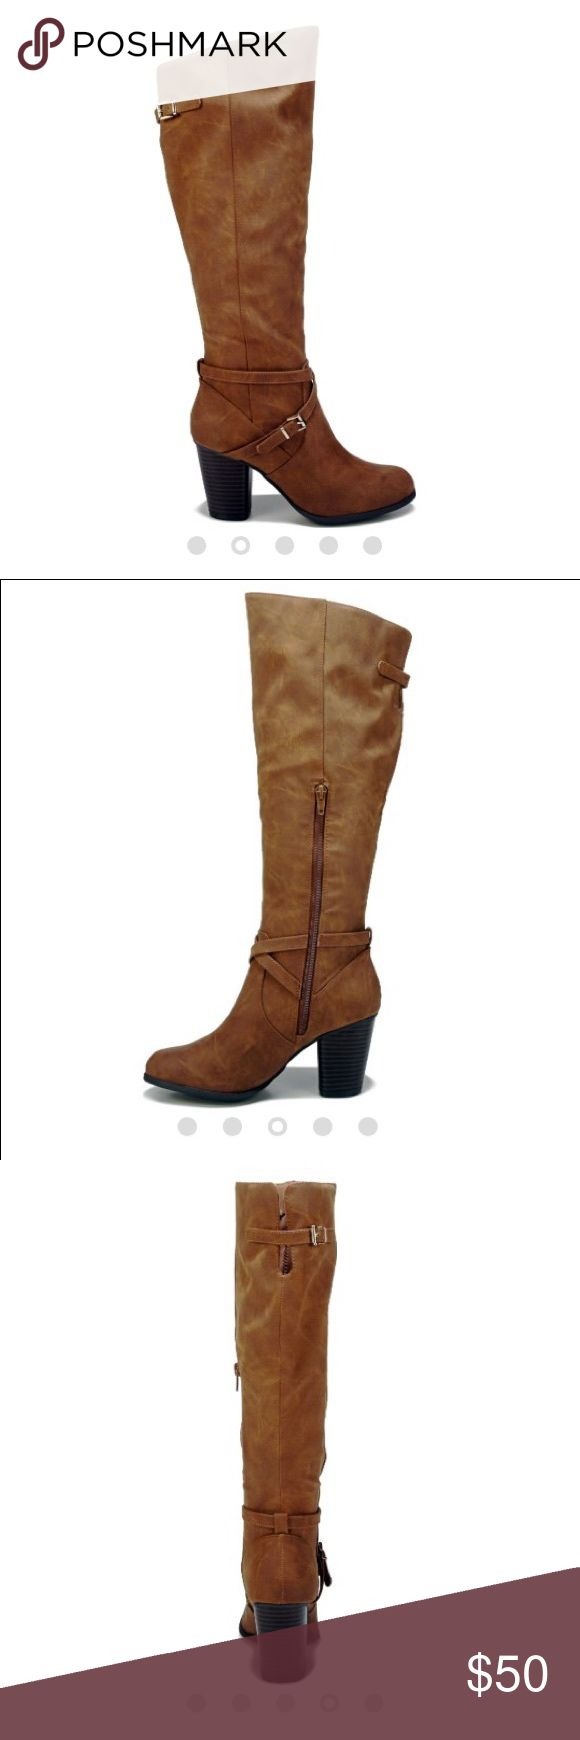 Madden Girl Tall Brown Boots Tall brown suede boots with heel never worn new in box Madden Girl Shoes Heeled Boots